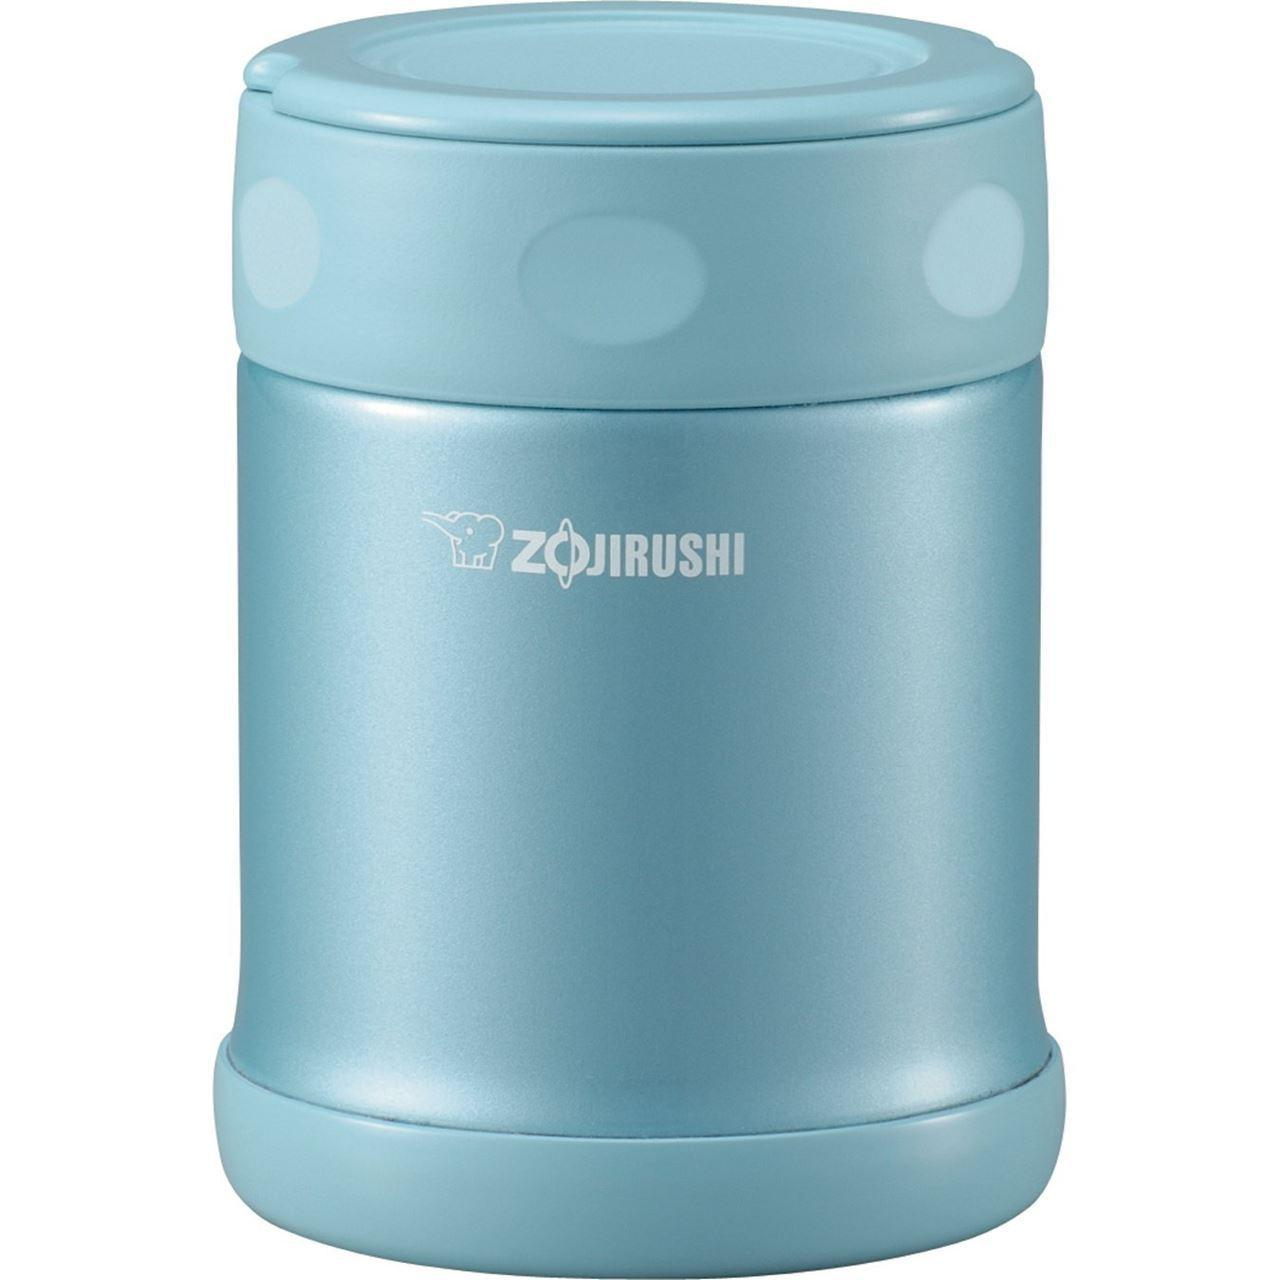 $24.98 Zojirushi SW-EAE35AB Stainless Steel Food Jar, 12-Ounce/0.35-Liter, Aqua Blue